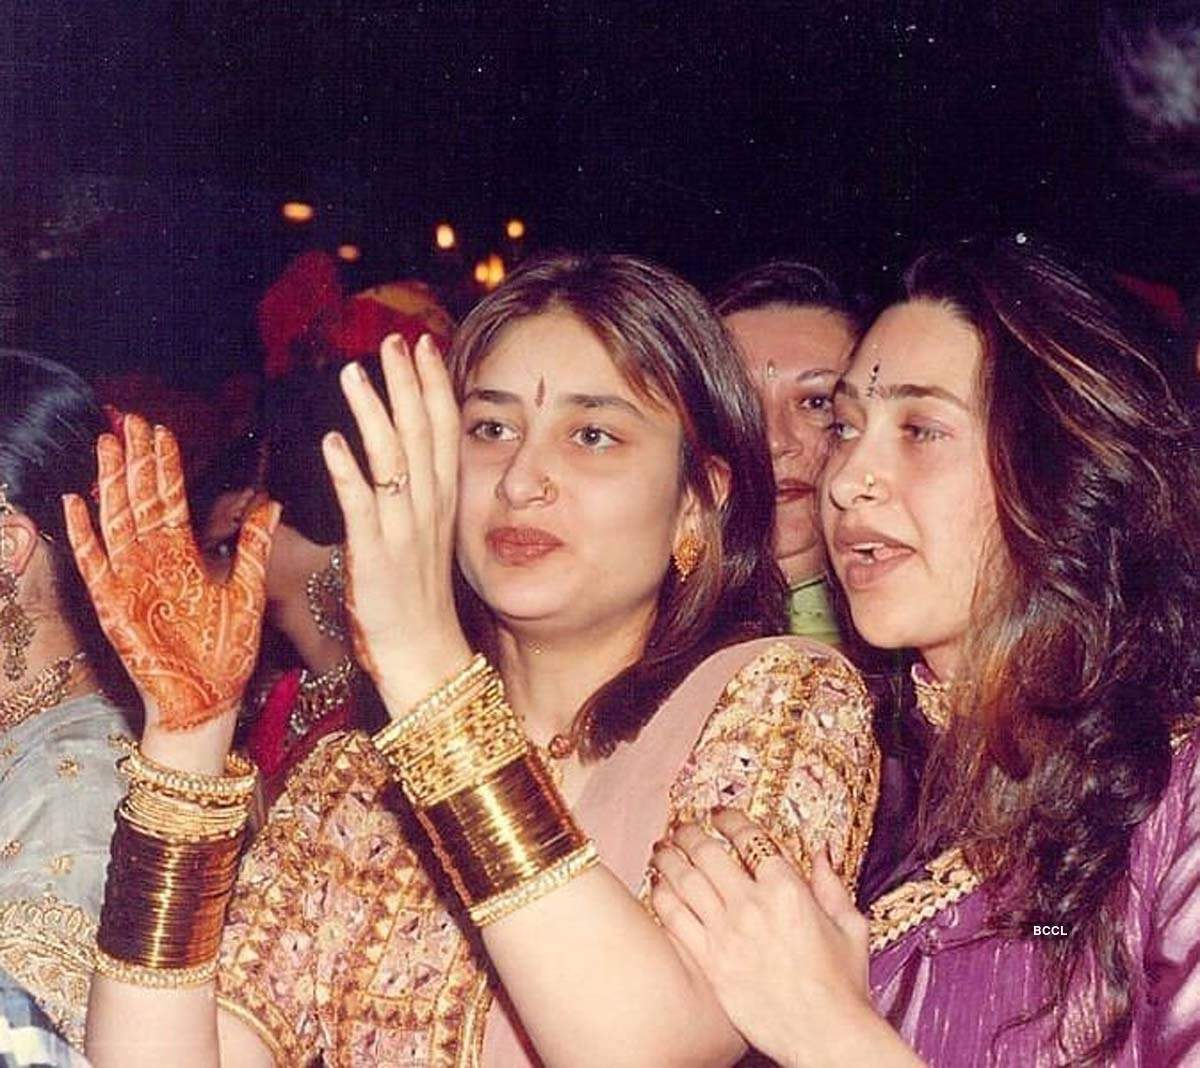 Fans are unable to recognise Kareena Kapoor Khan and Karisma Kapoor in this throwback pic